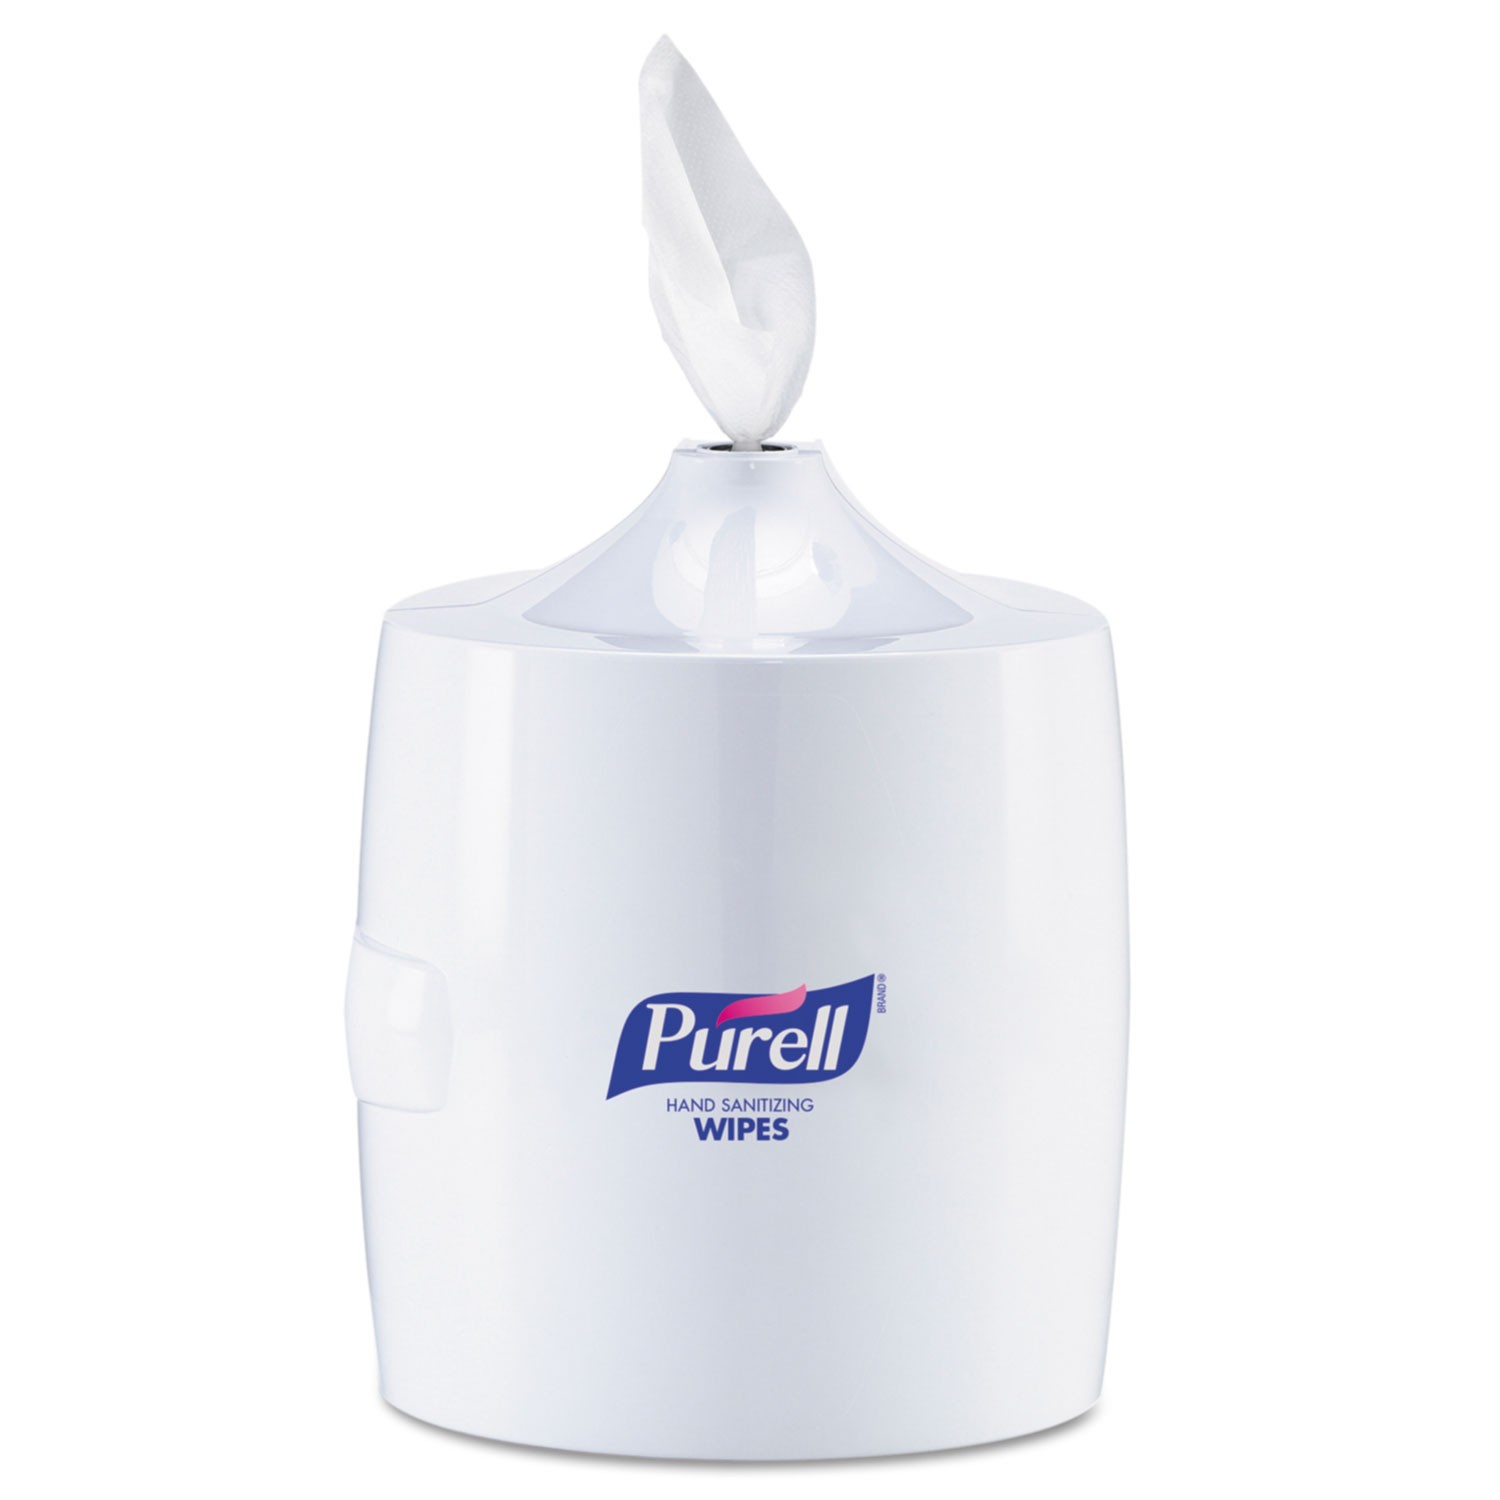 Hand Sanitizer Wipes Wall Mount Dispenser By Purell